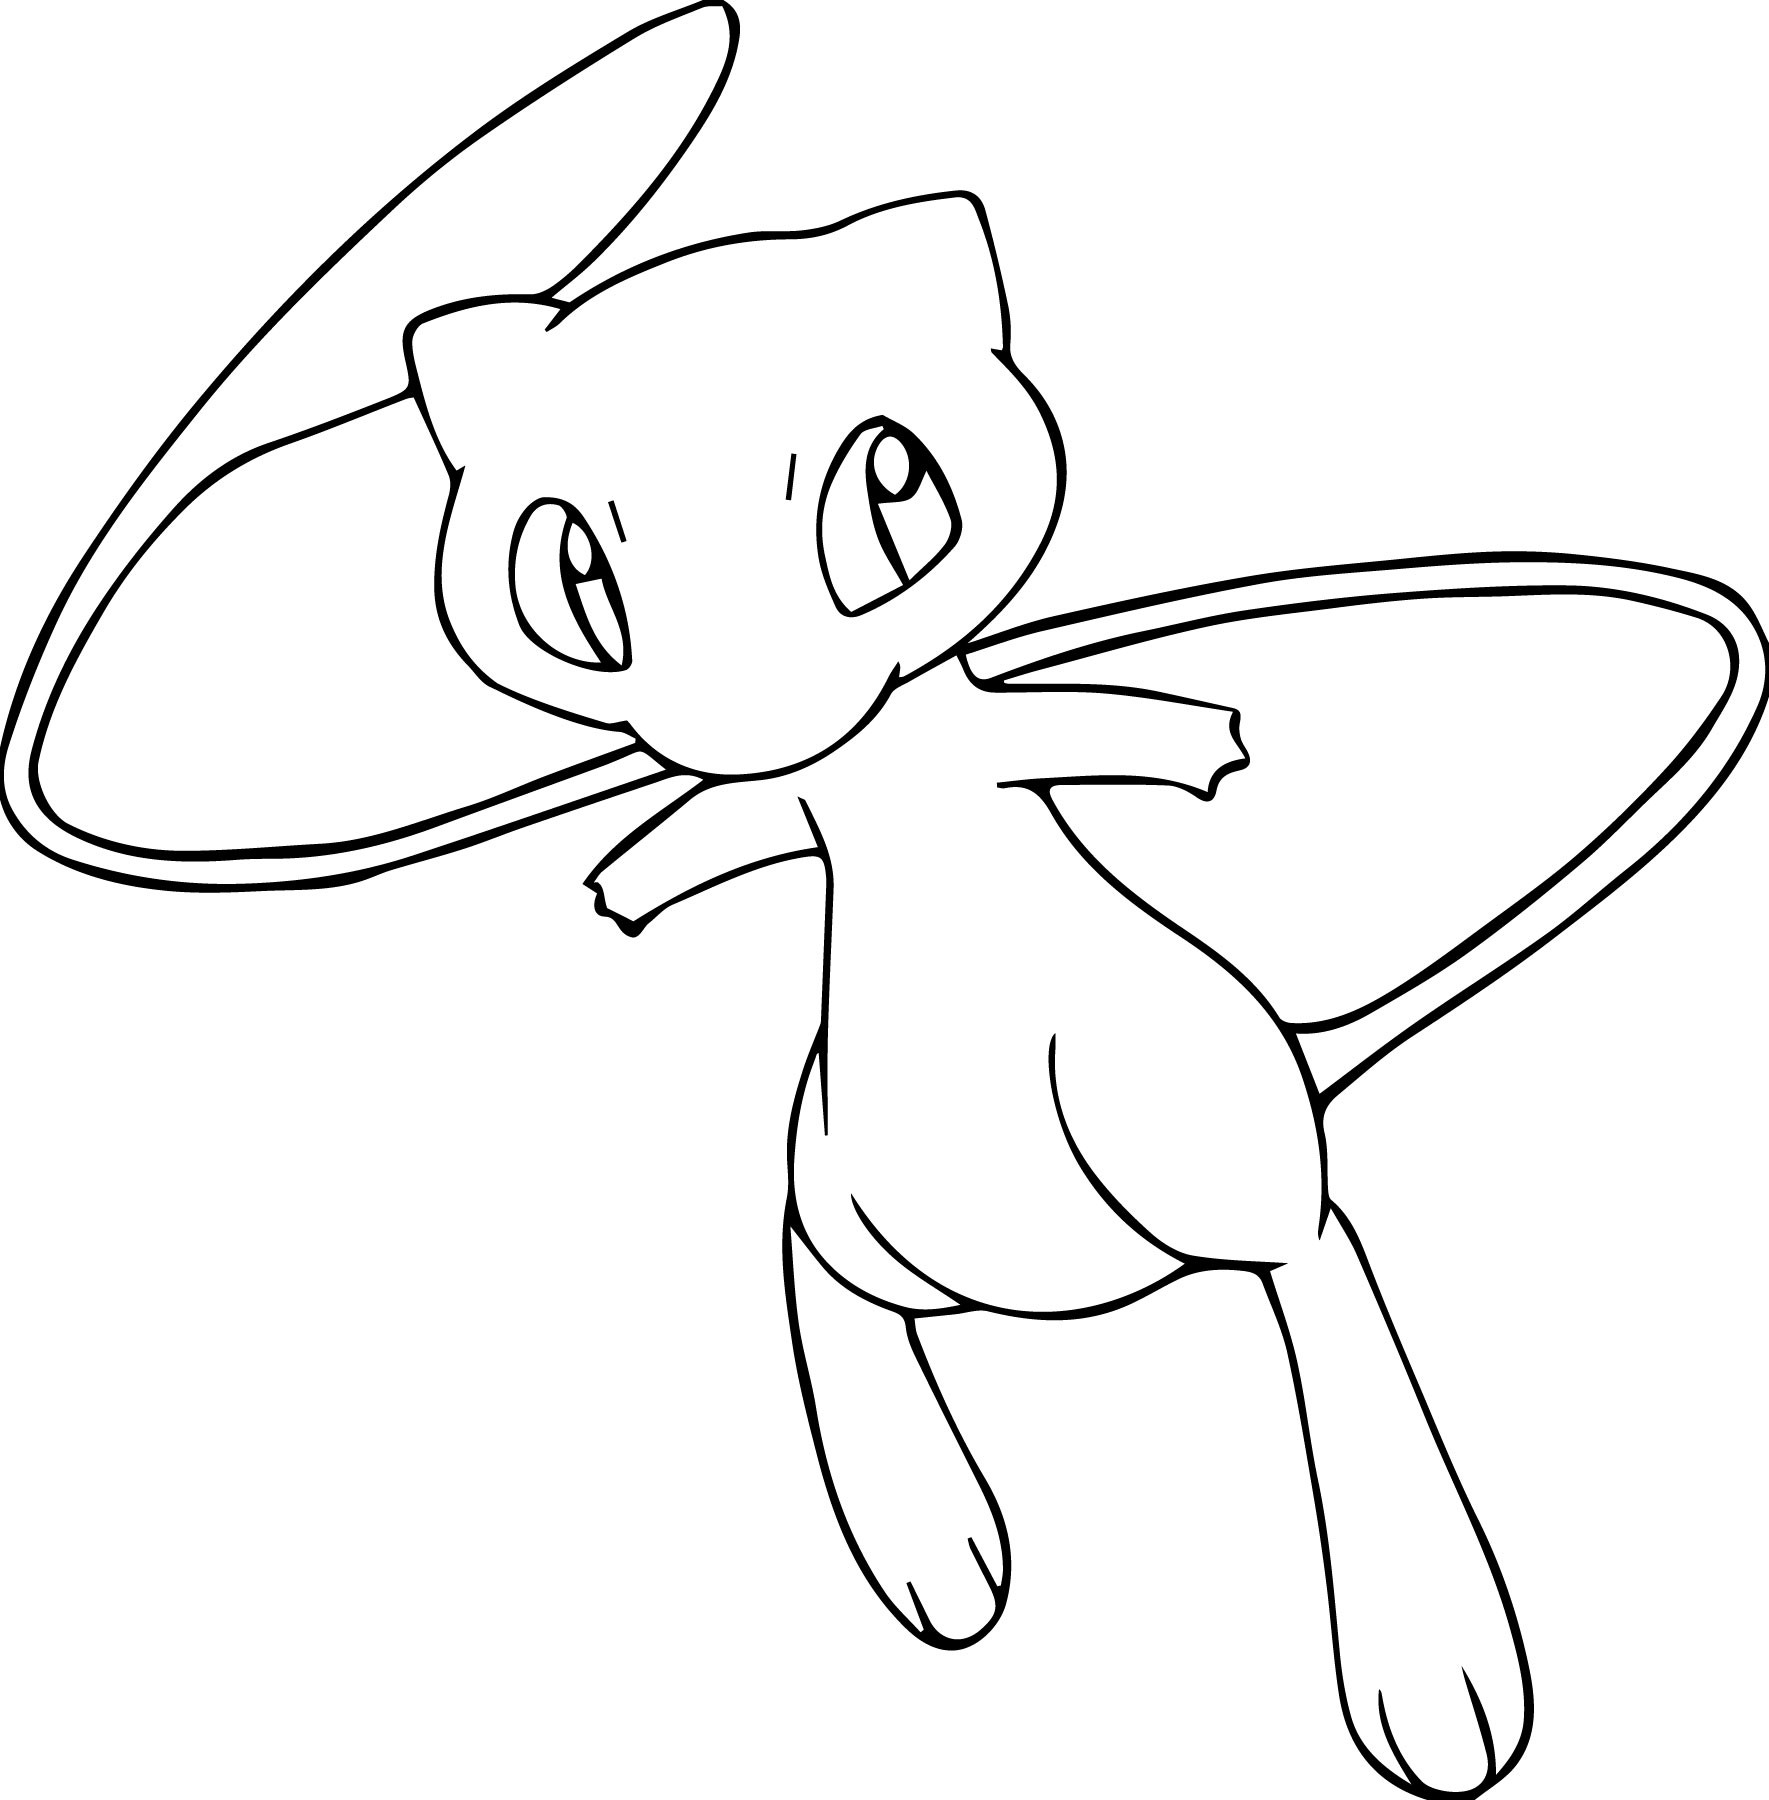 1769x1800 Mew Mew Coloring Pages For Kids Elegant Coloring Pages Pokemon